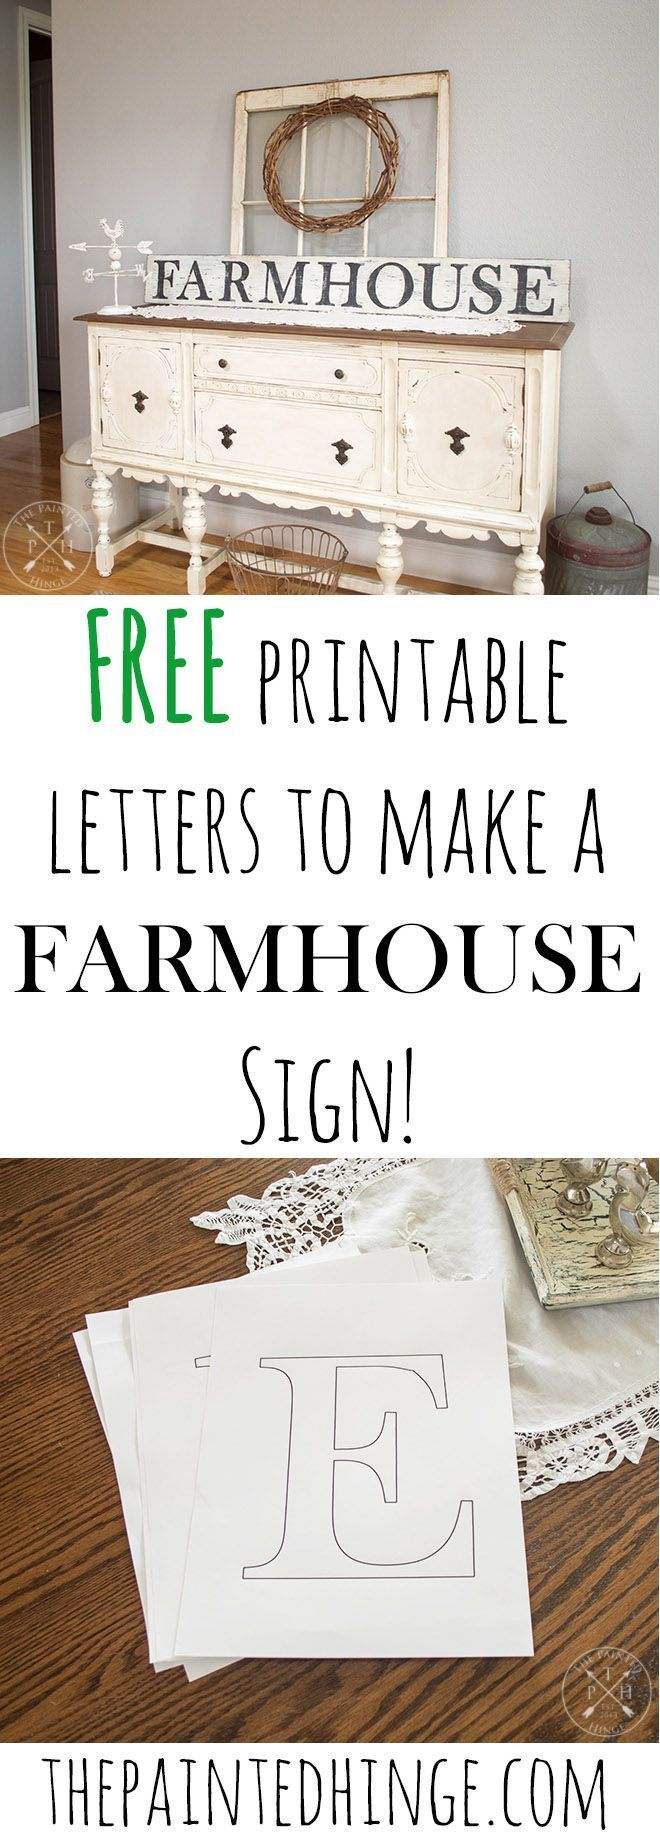 Free printable letters to make a farmhouse sign printable letters